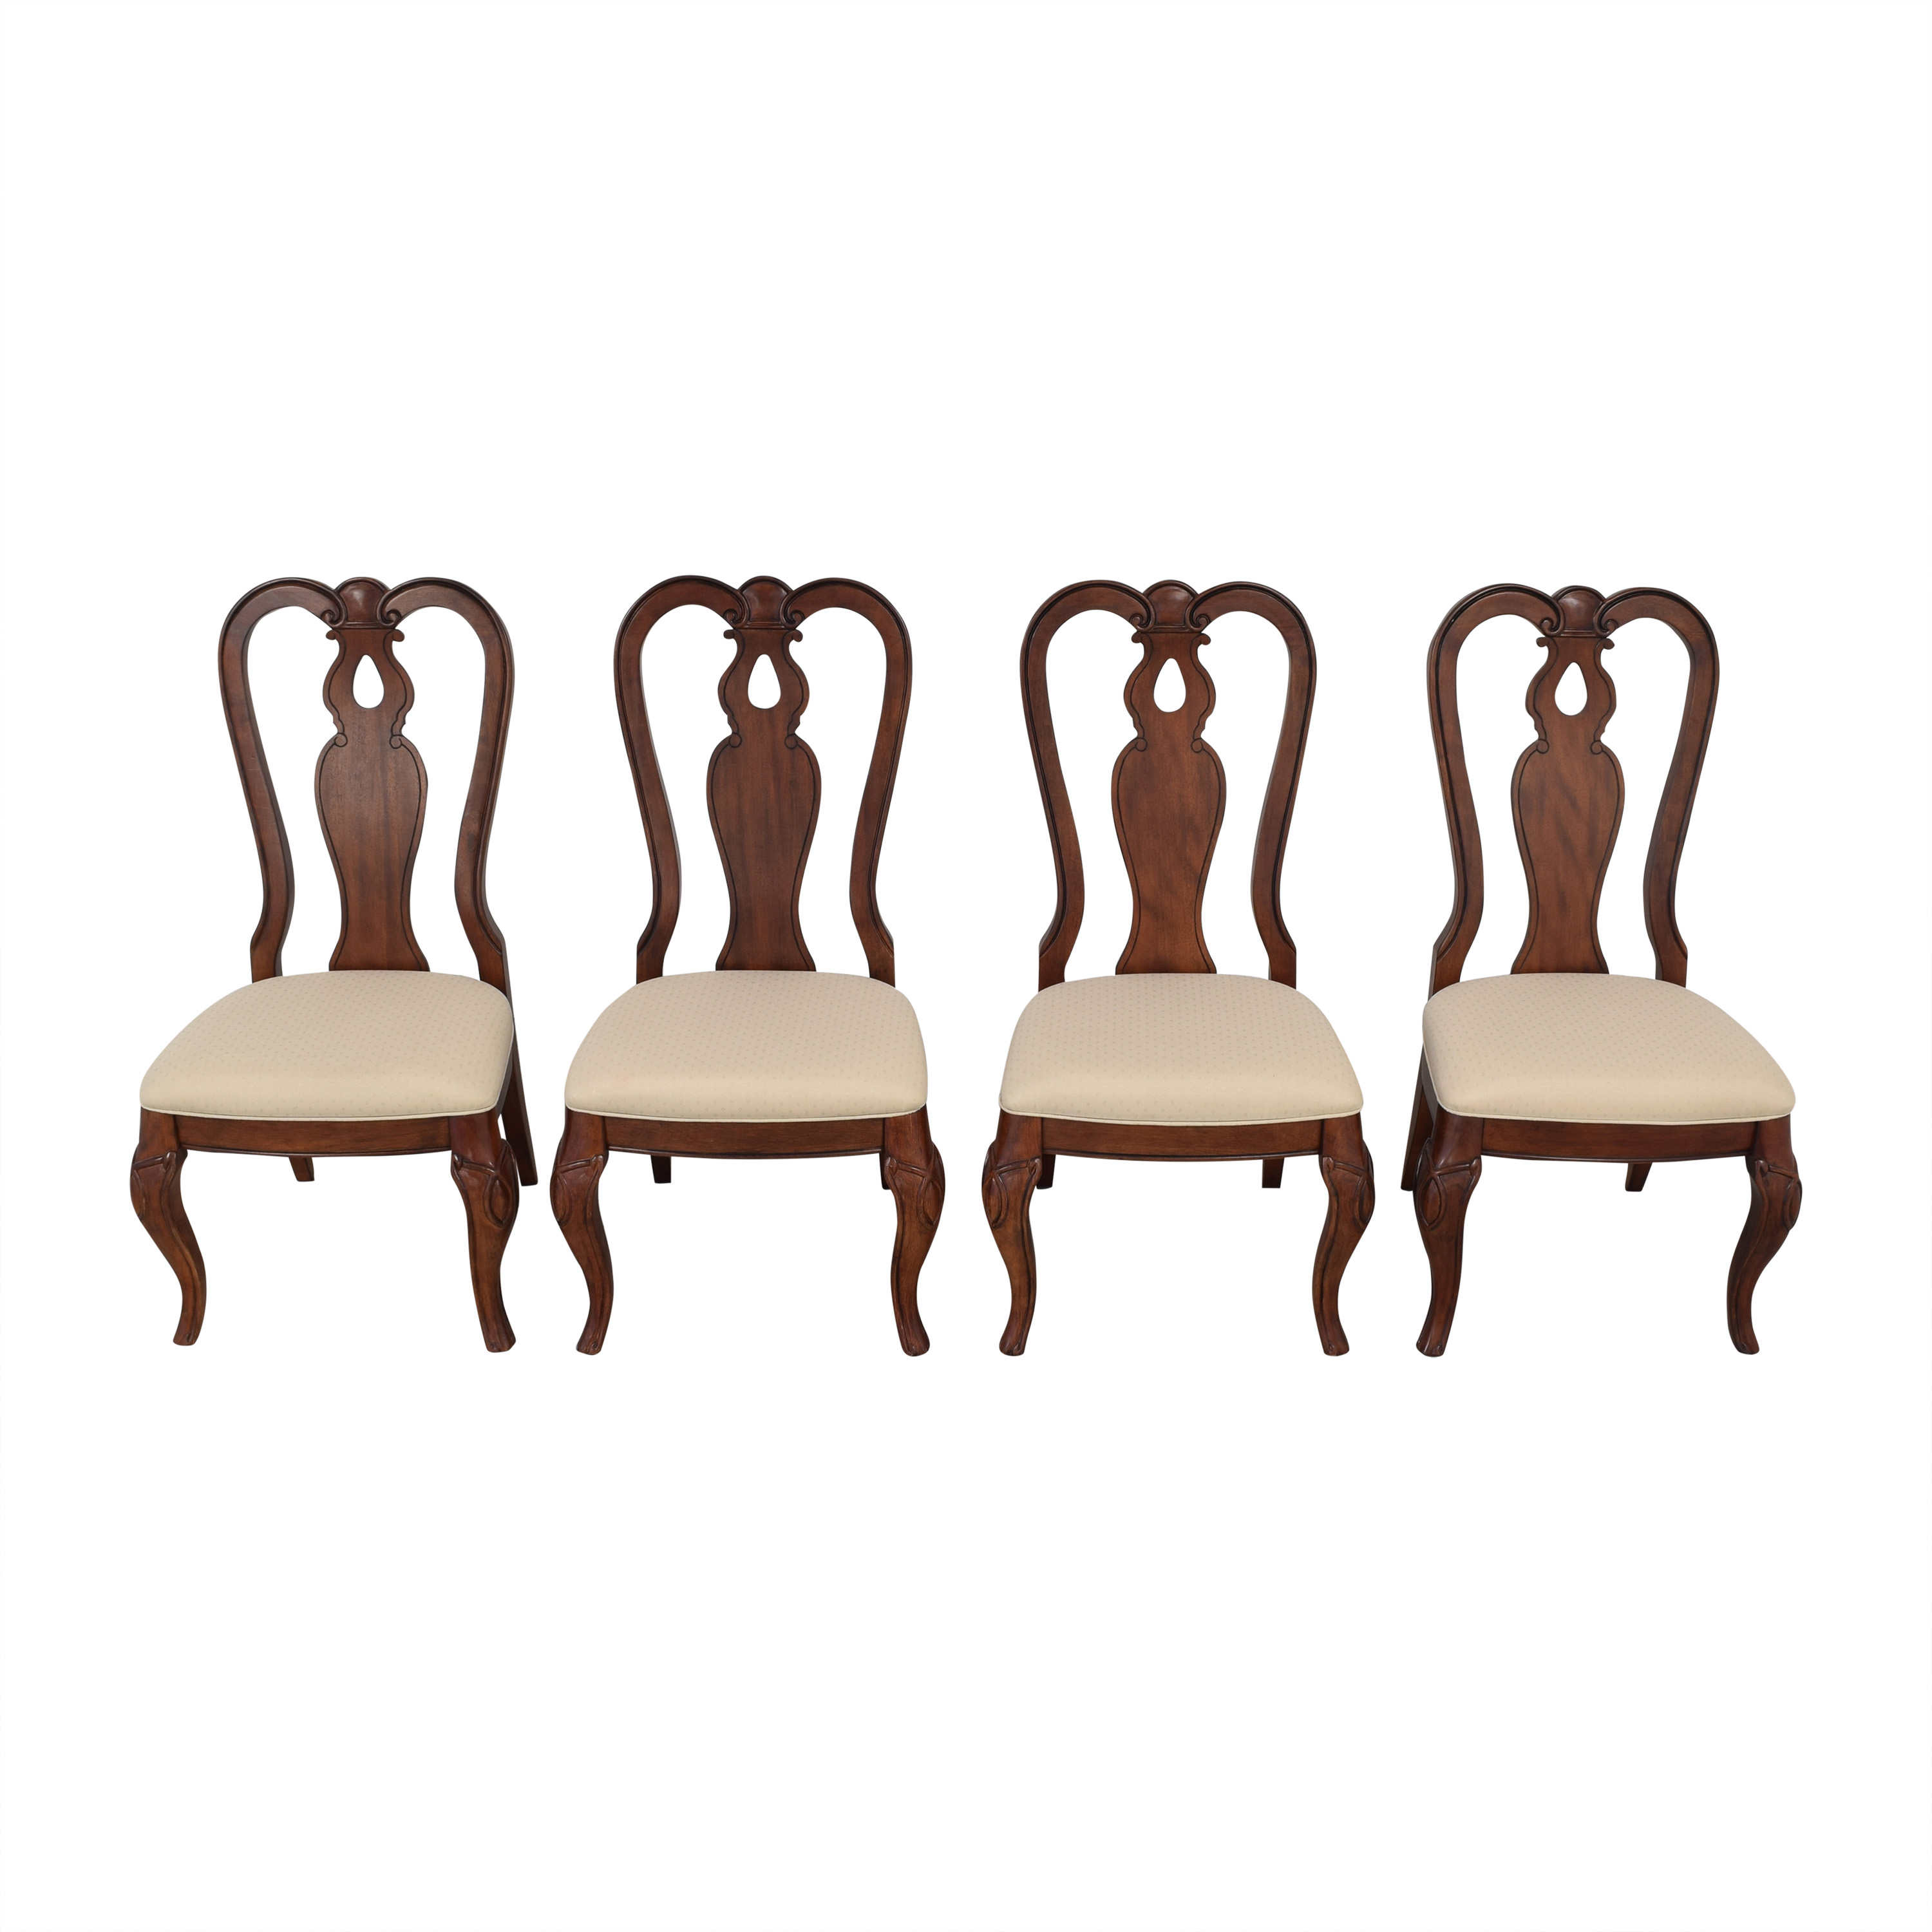 Macy's Macys Bordeaux Dining Chairs discount